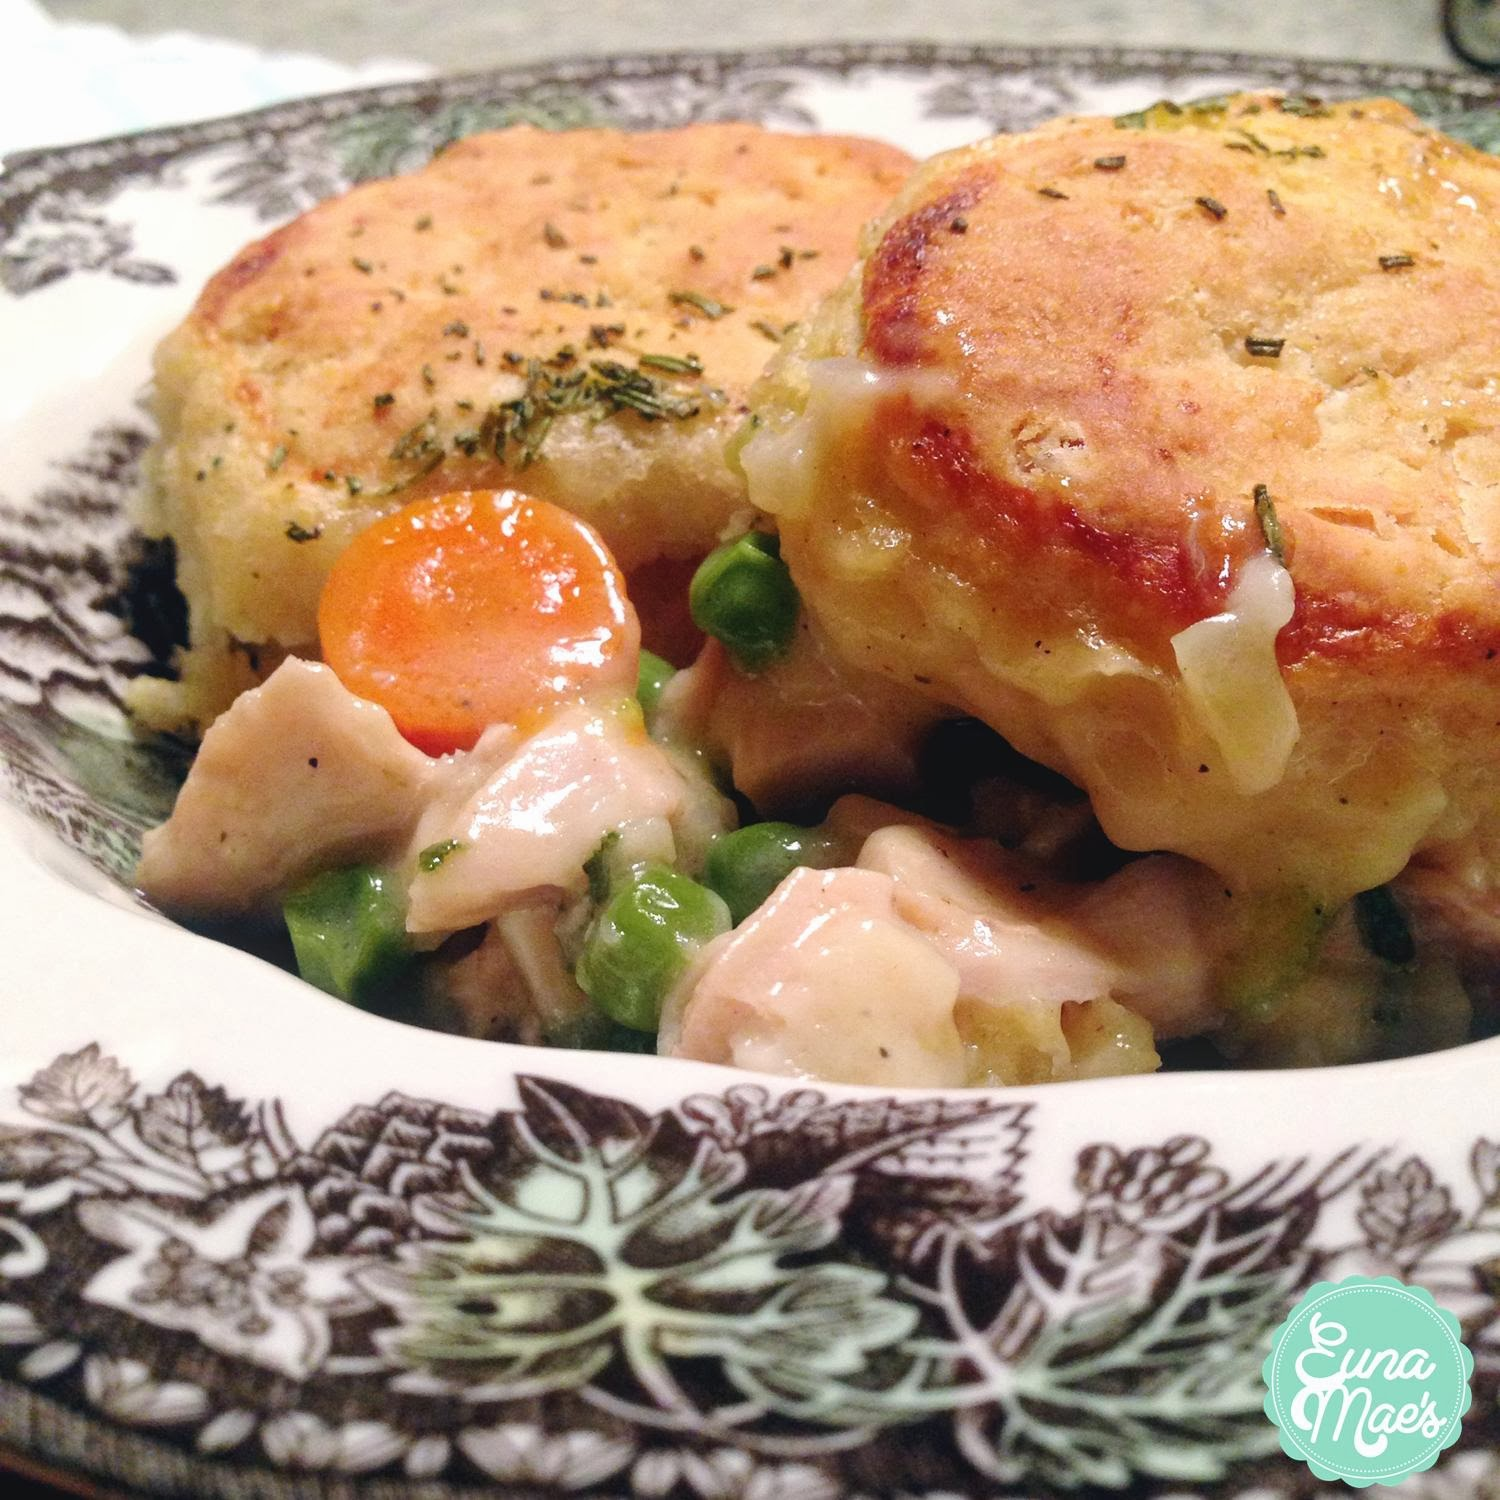 ... biscuit whole whe a t biscuit recipe turkey pot pie with biscuit crust